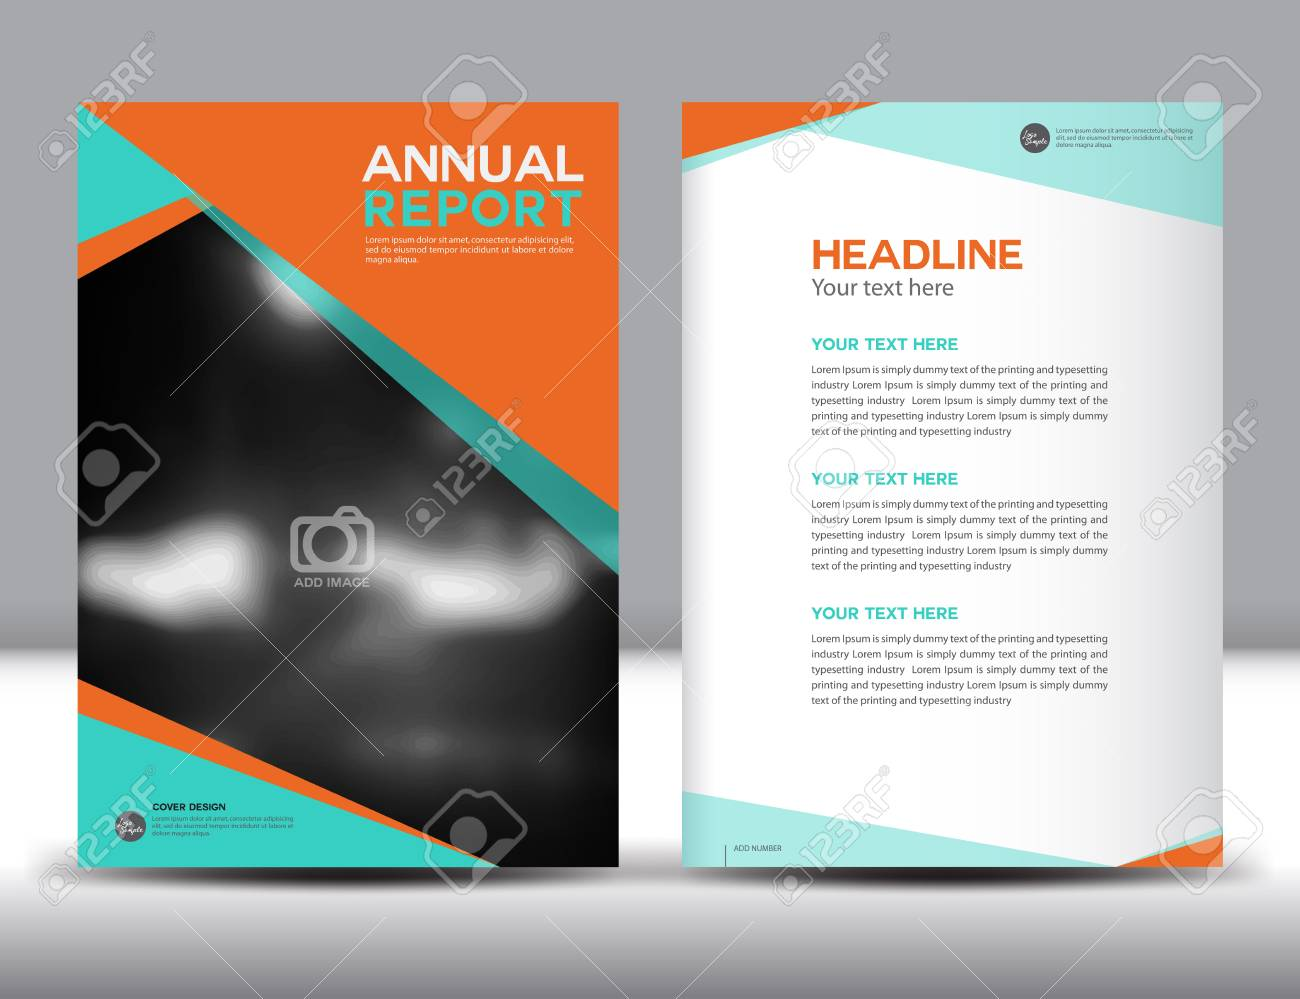 orange annual report template illustration polygon background